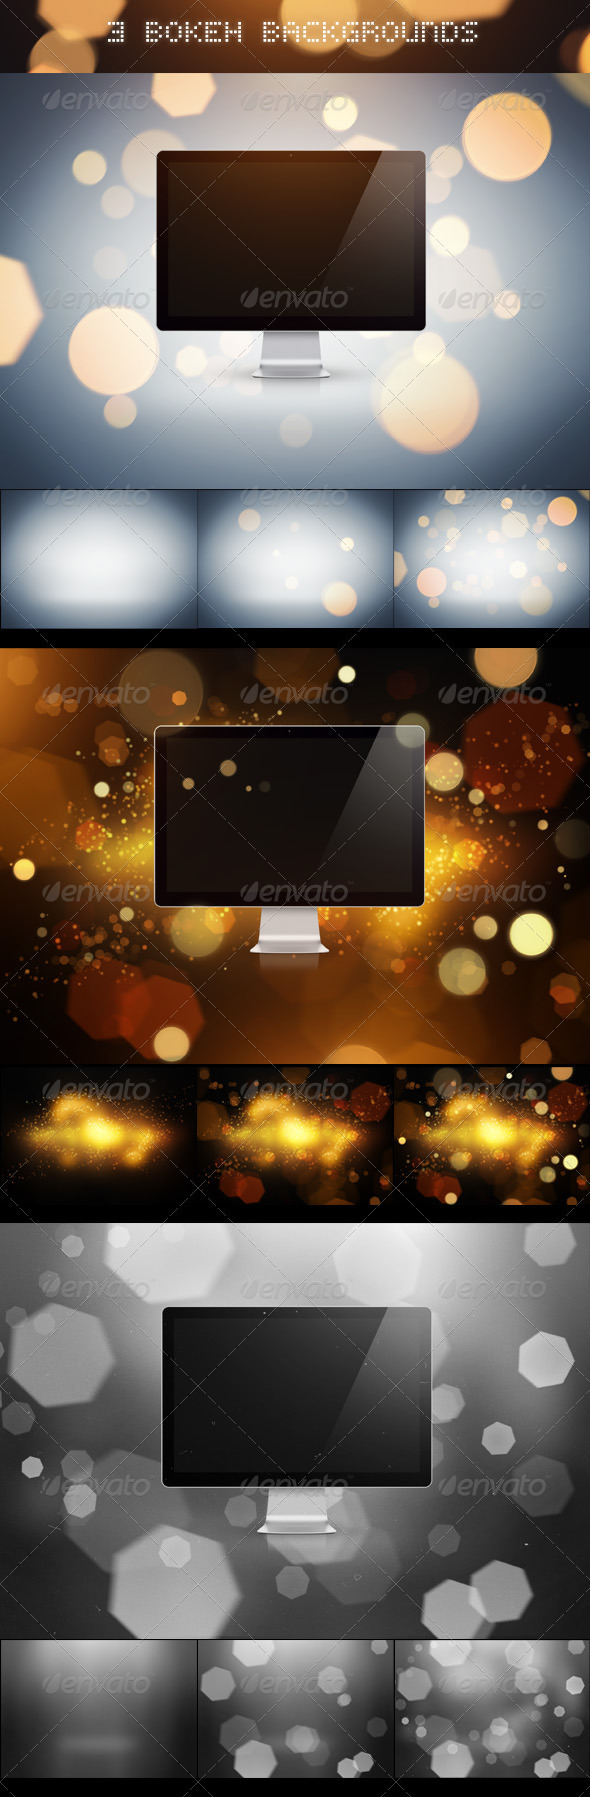 3 Bokeh Backgrounds